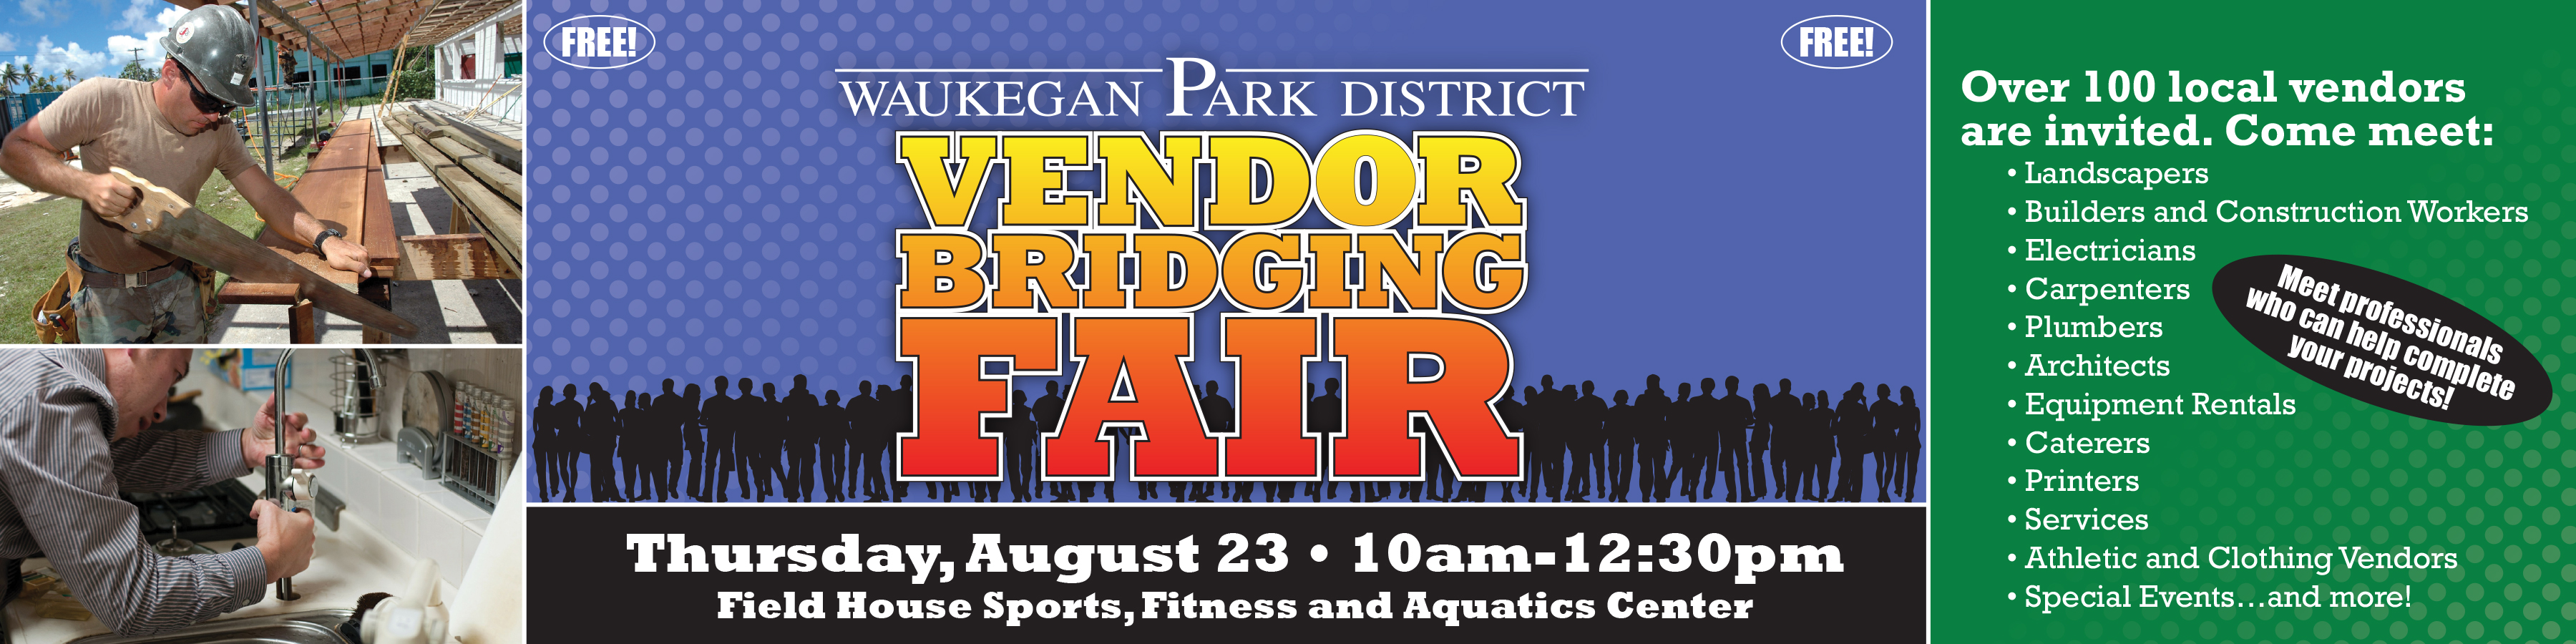 Vendor Fair Banners